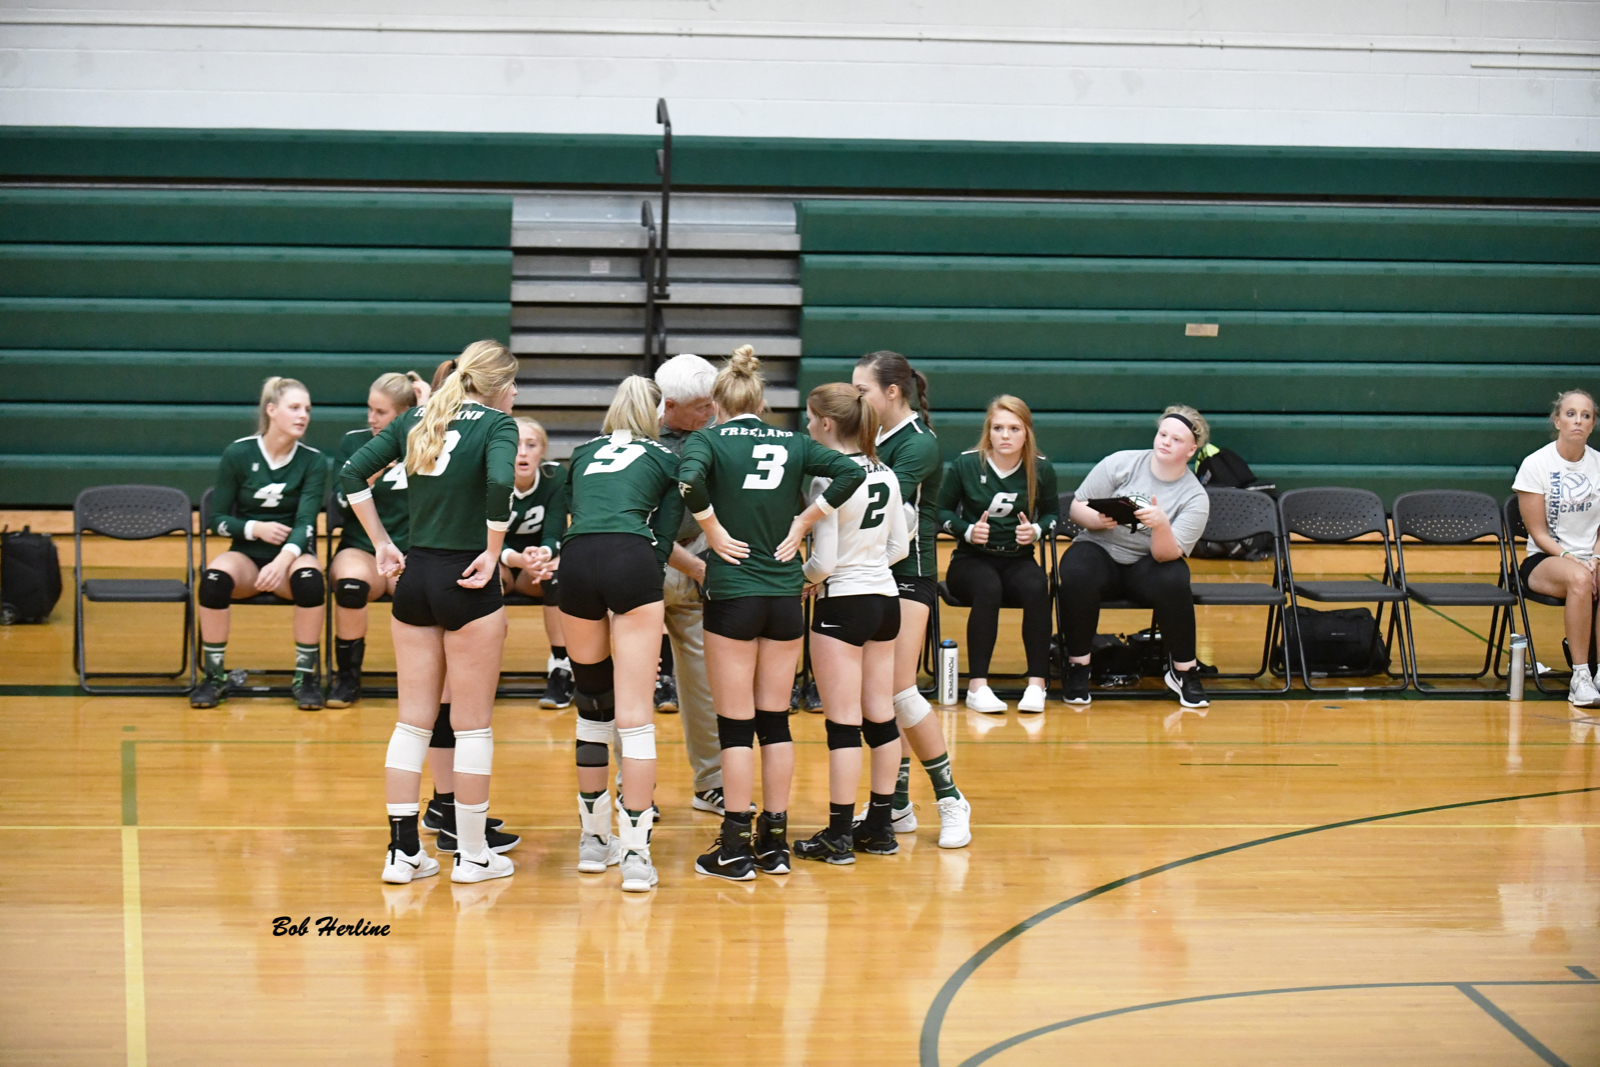 Volleyball Wins at Swan Valley